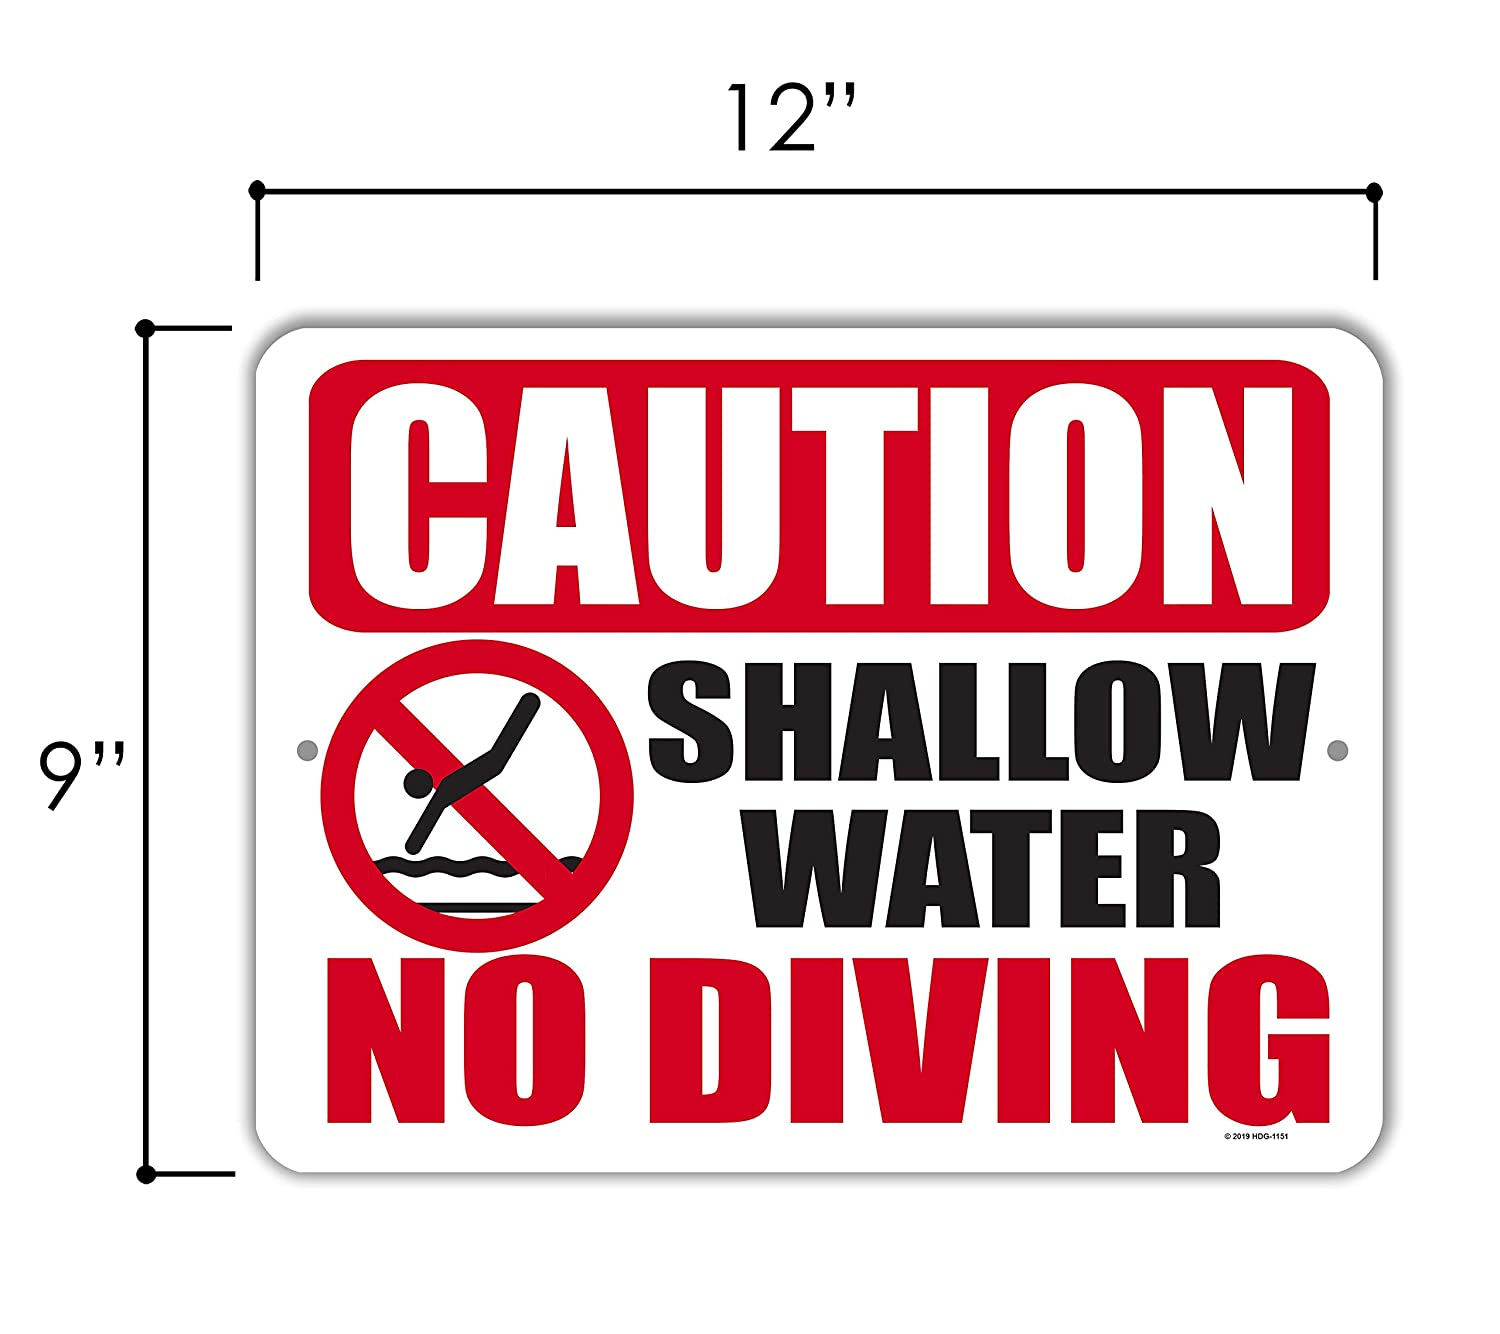 9 x 12 Inch Metal Aluminum Pool Signs Caution Shallow Water No Diving Swimming Pool Outdoor Signs Made in USA Honey Dew Gifts Pool Decor